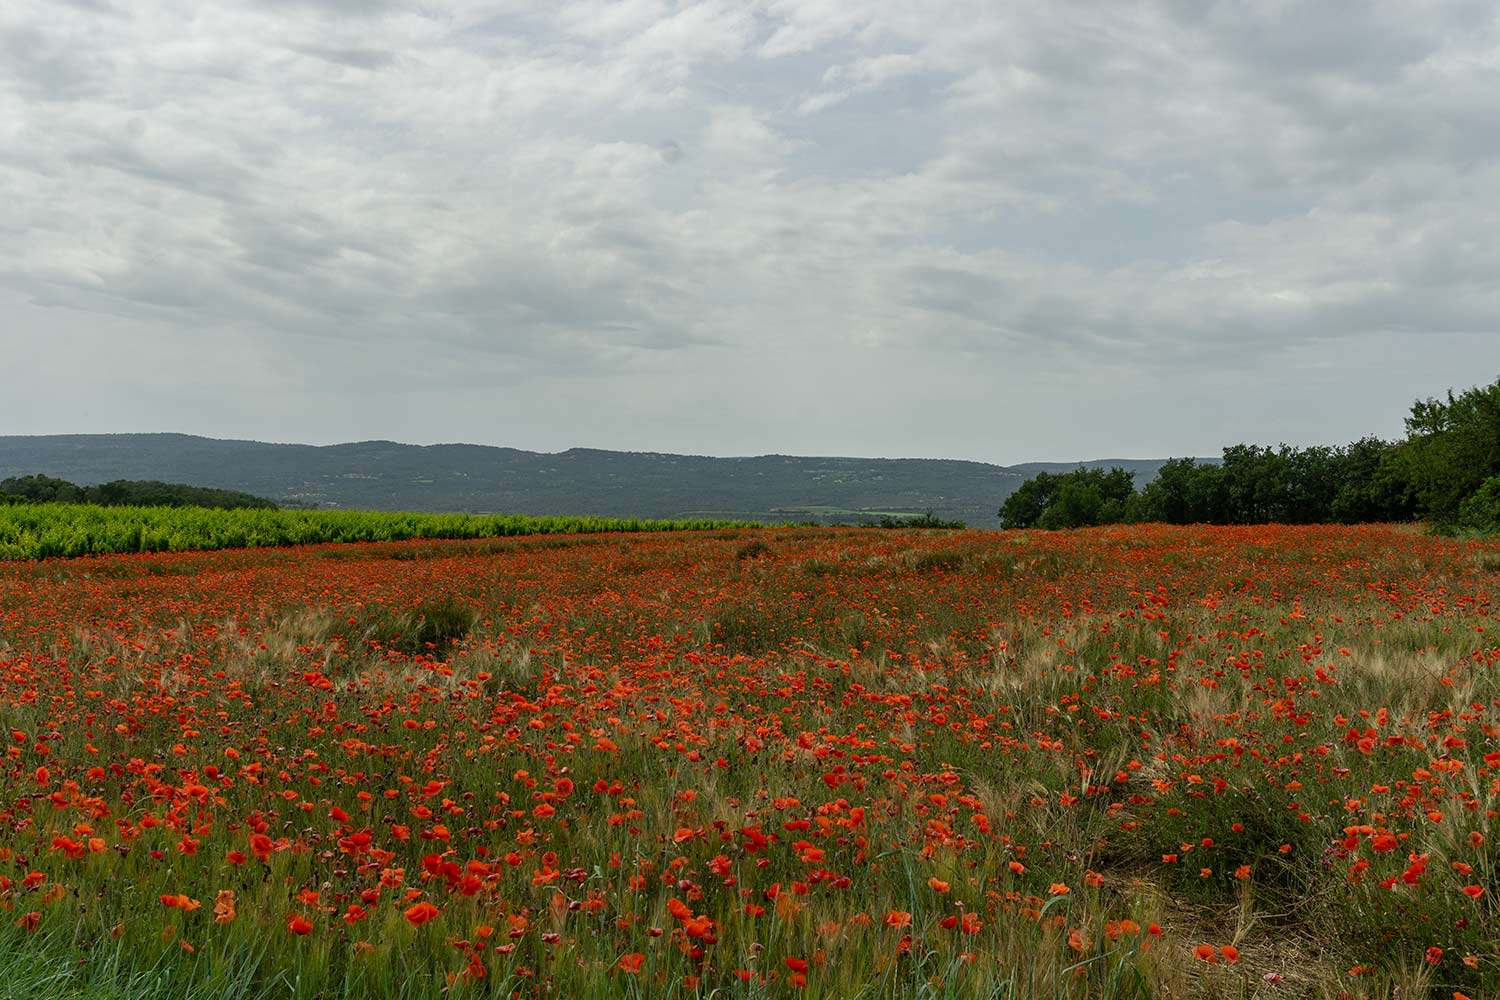 A field of poppies.